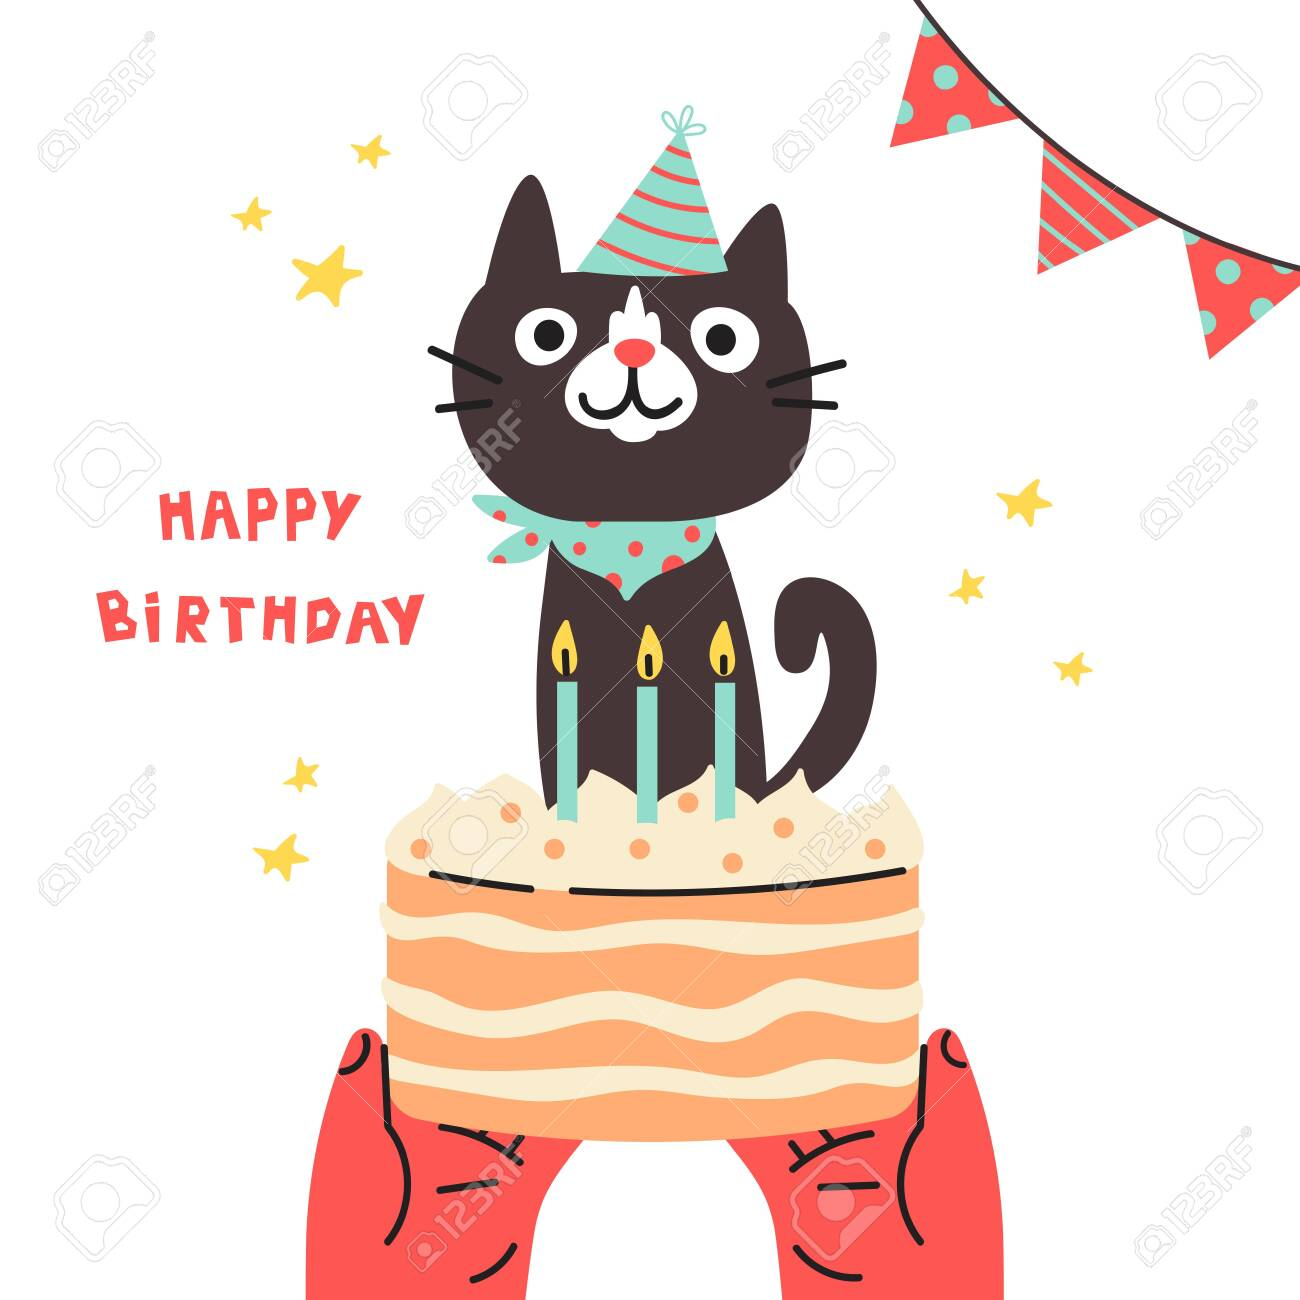 Pet Birthday Party Cat In Festive Cap Happy Birthday Lettering Lovely Royalty Free Cliparts Vectors And Stock Illustration Image 142023420